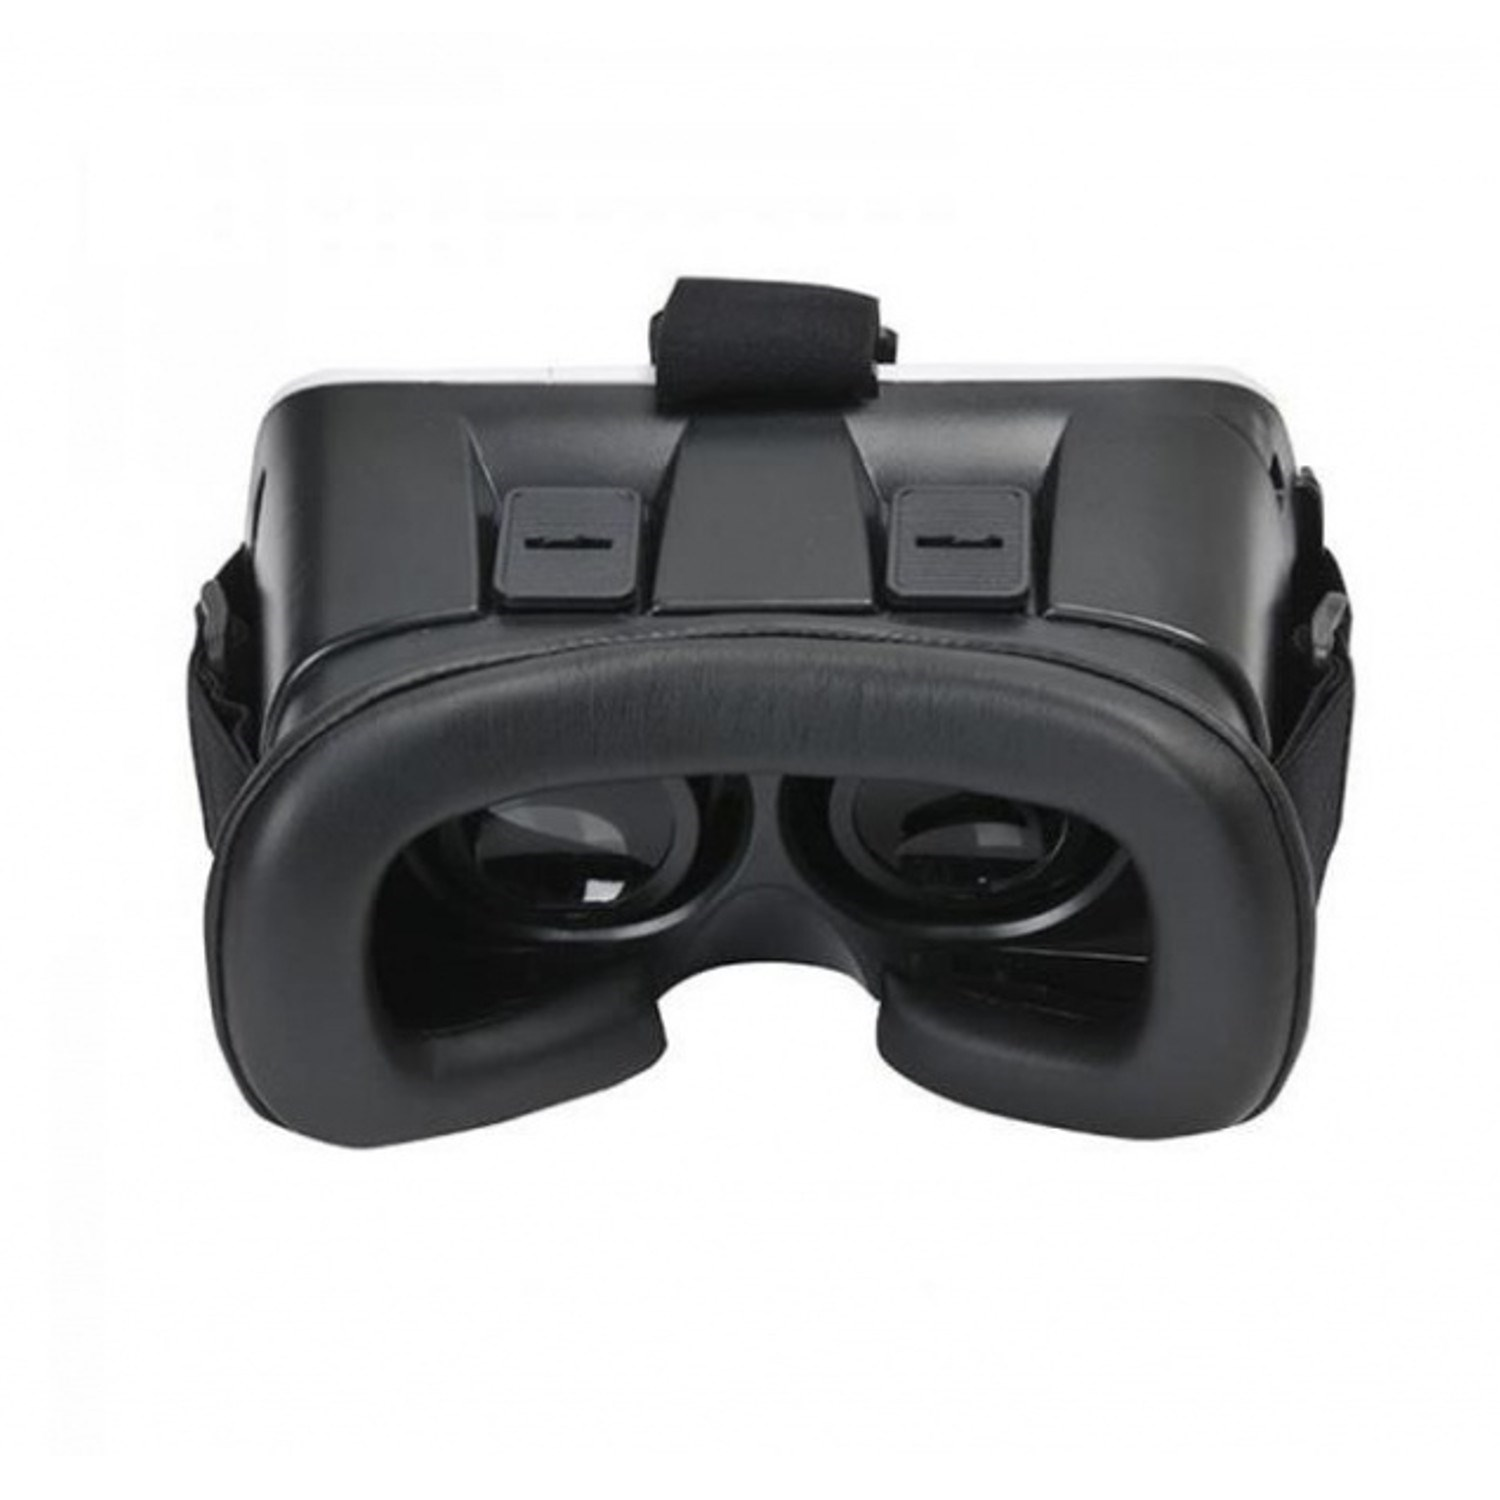 GAFAS REALIDAD VIRTUAL APPROX VR WITH DOUBLE CLICK